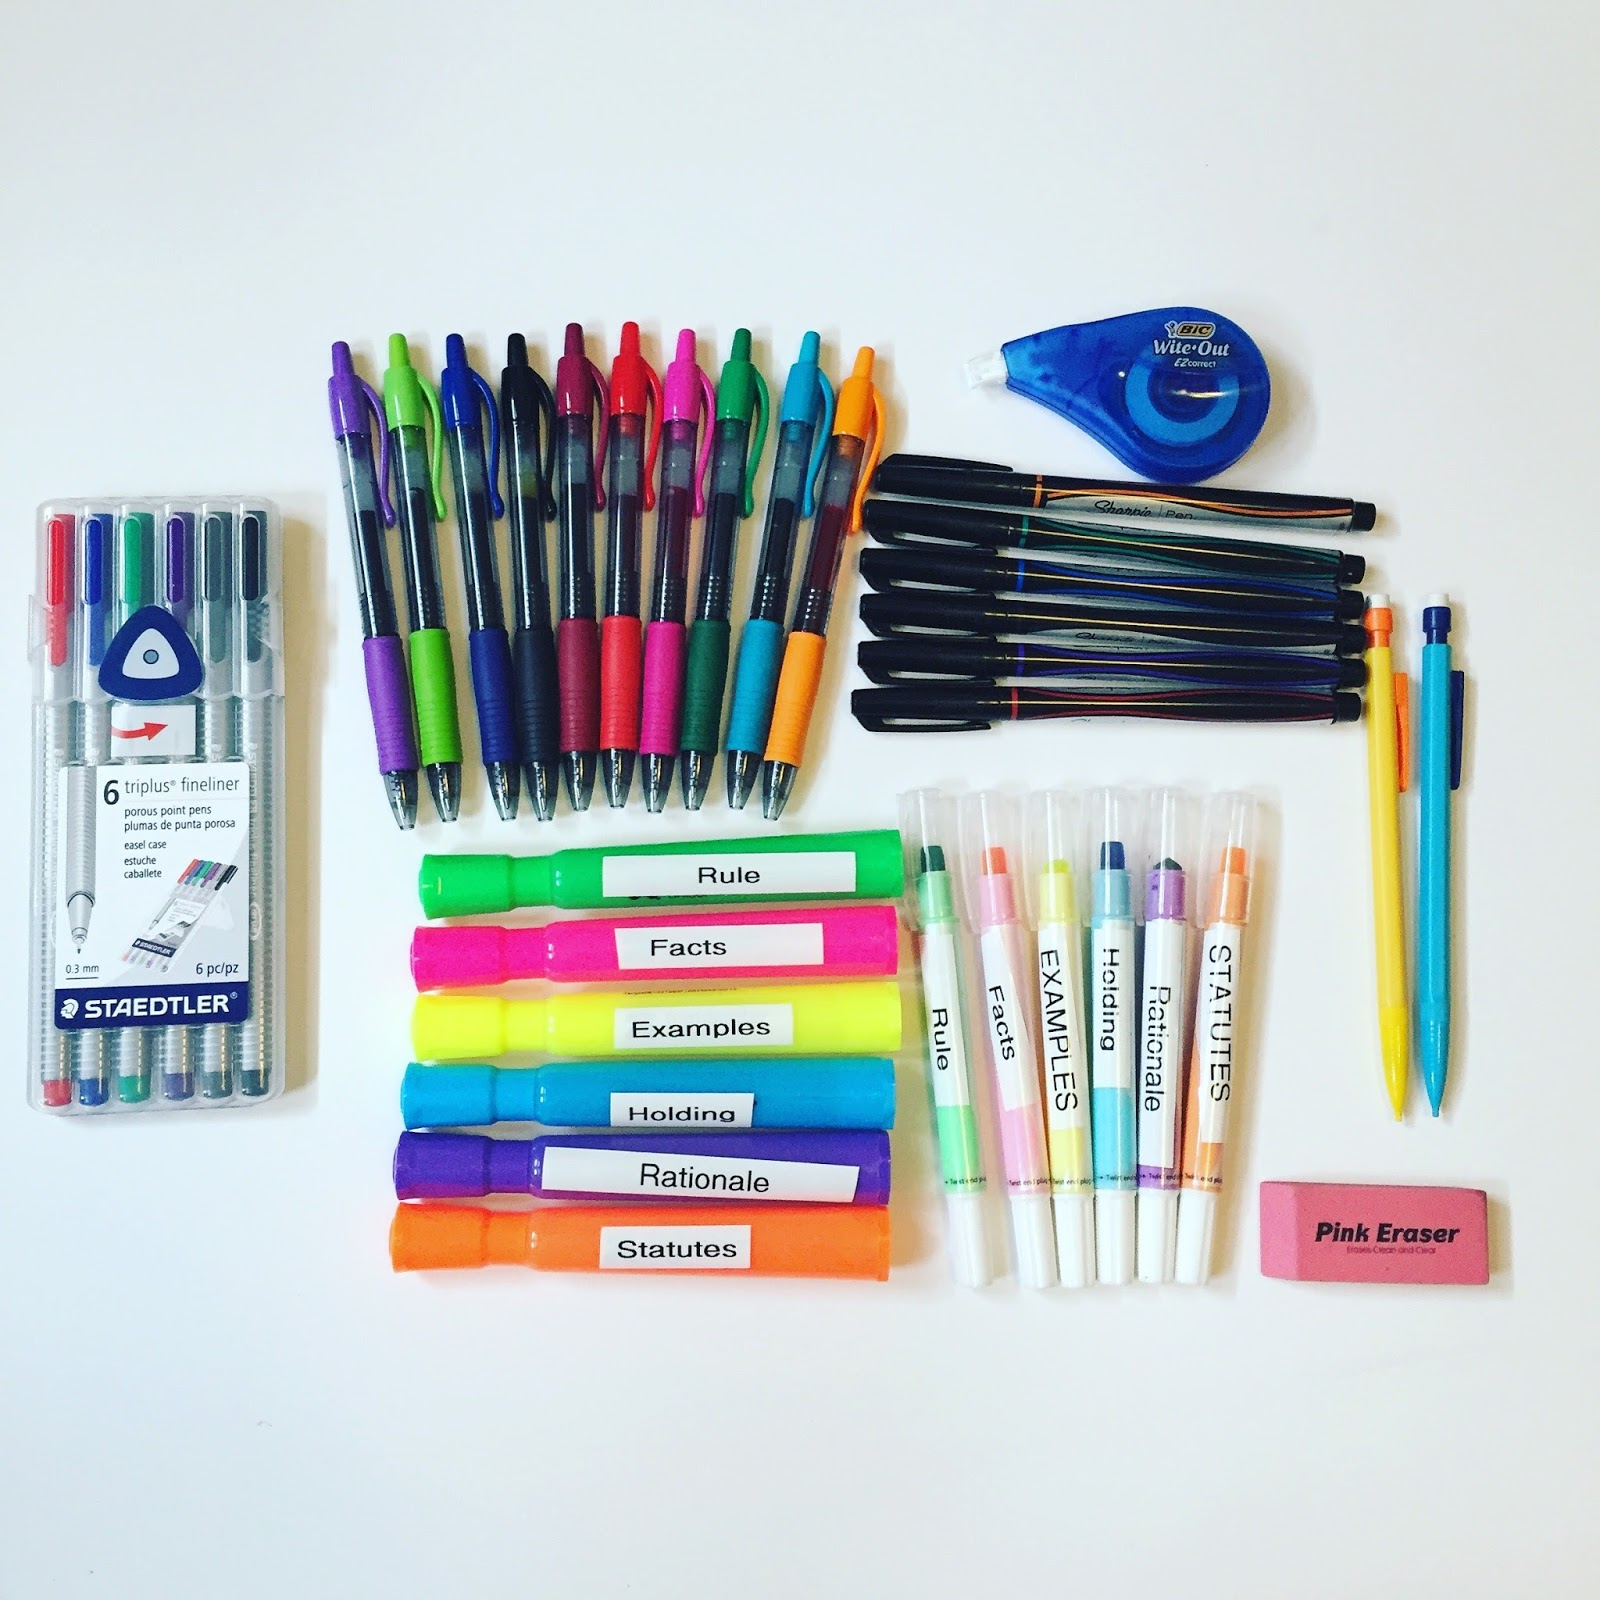 My Must Have School Supplies For Law School